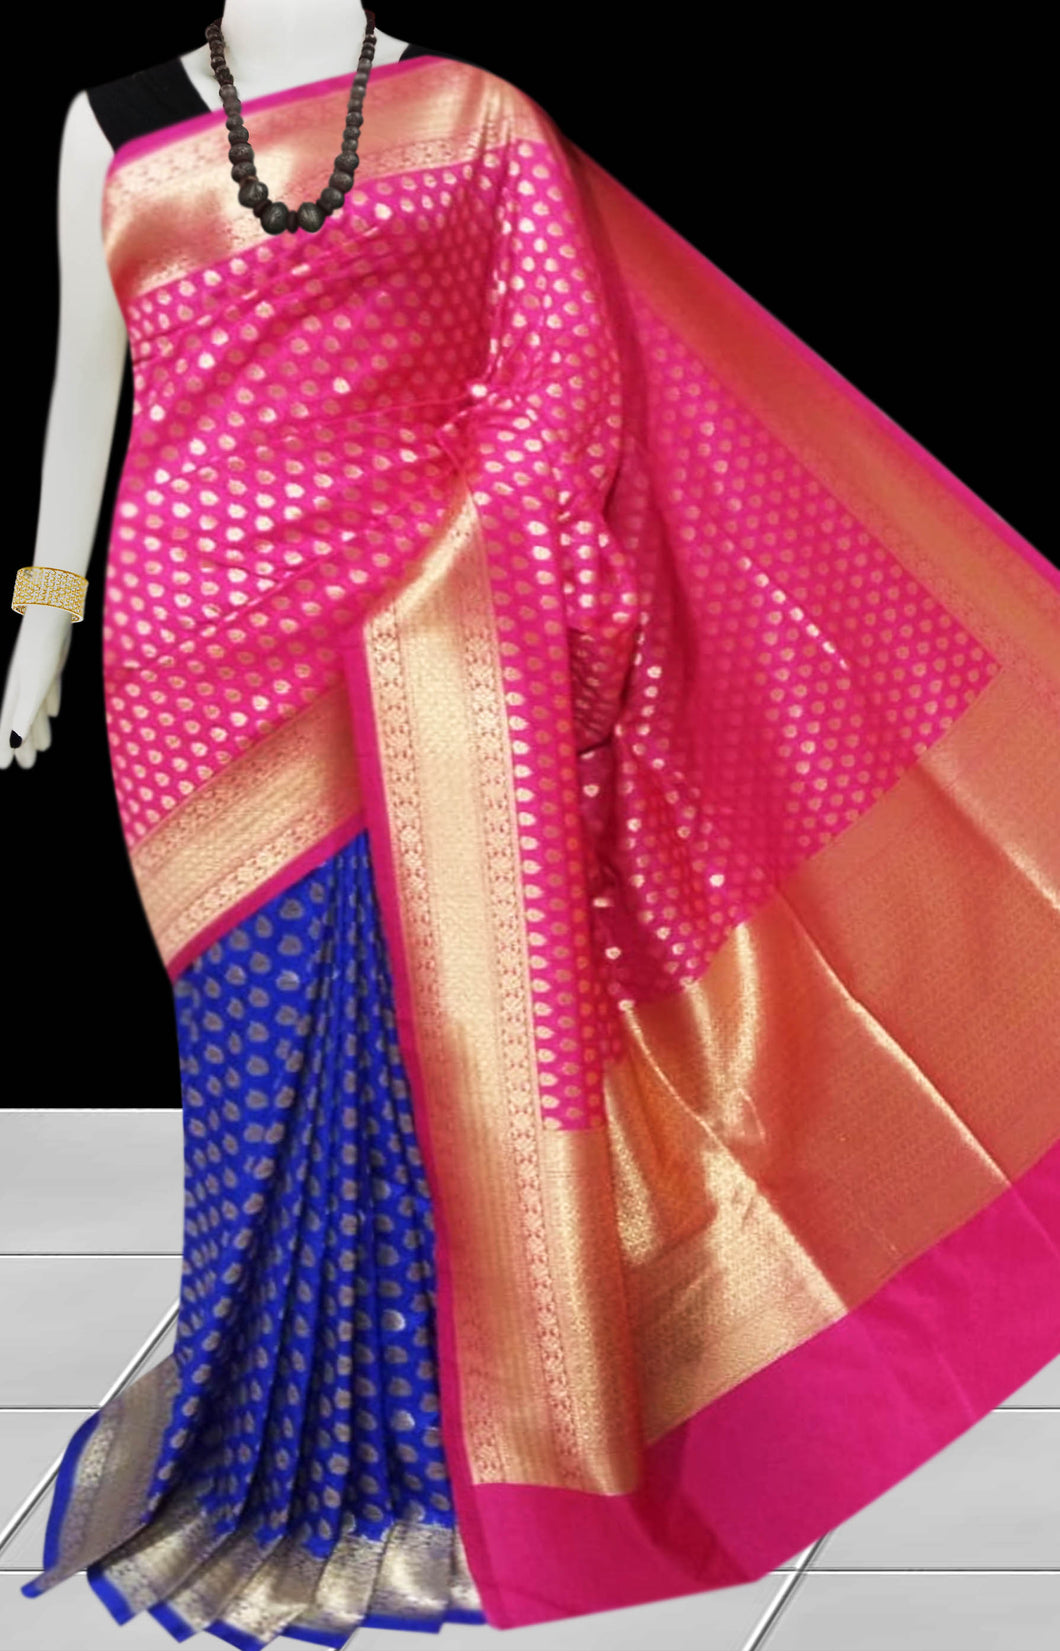 Fuscia & Blue Color Opara Silk saree, decorated with golden jari work